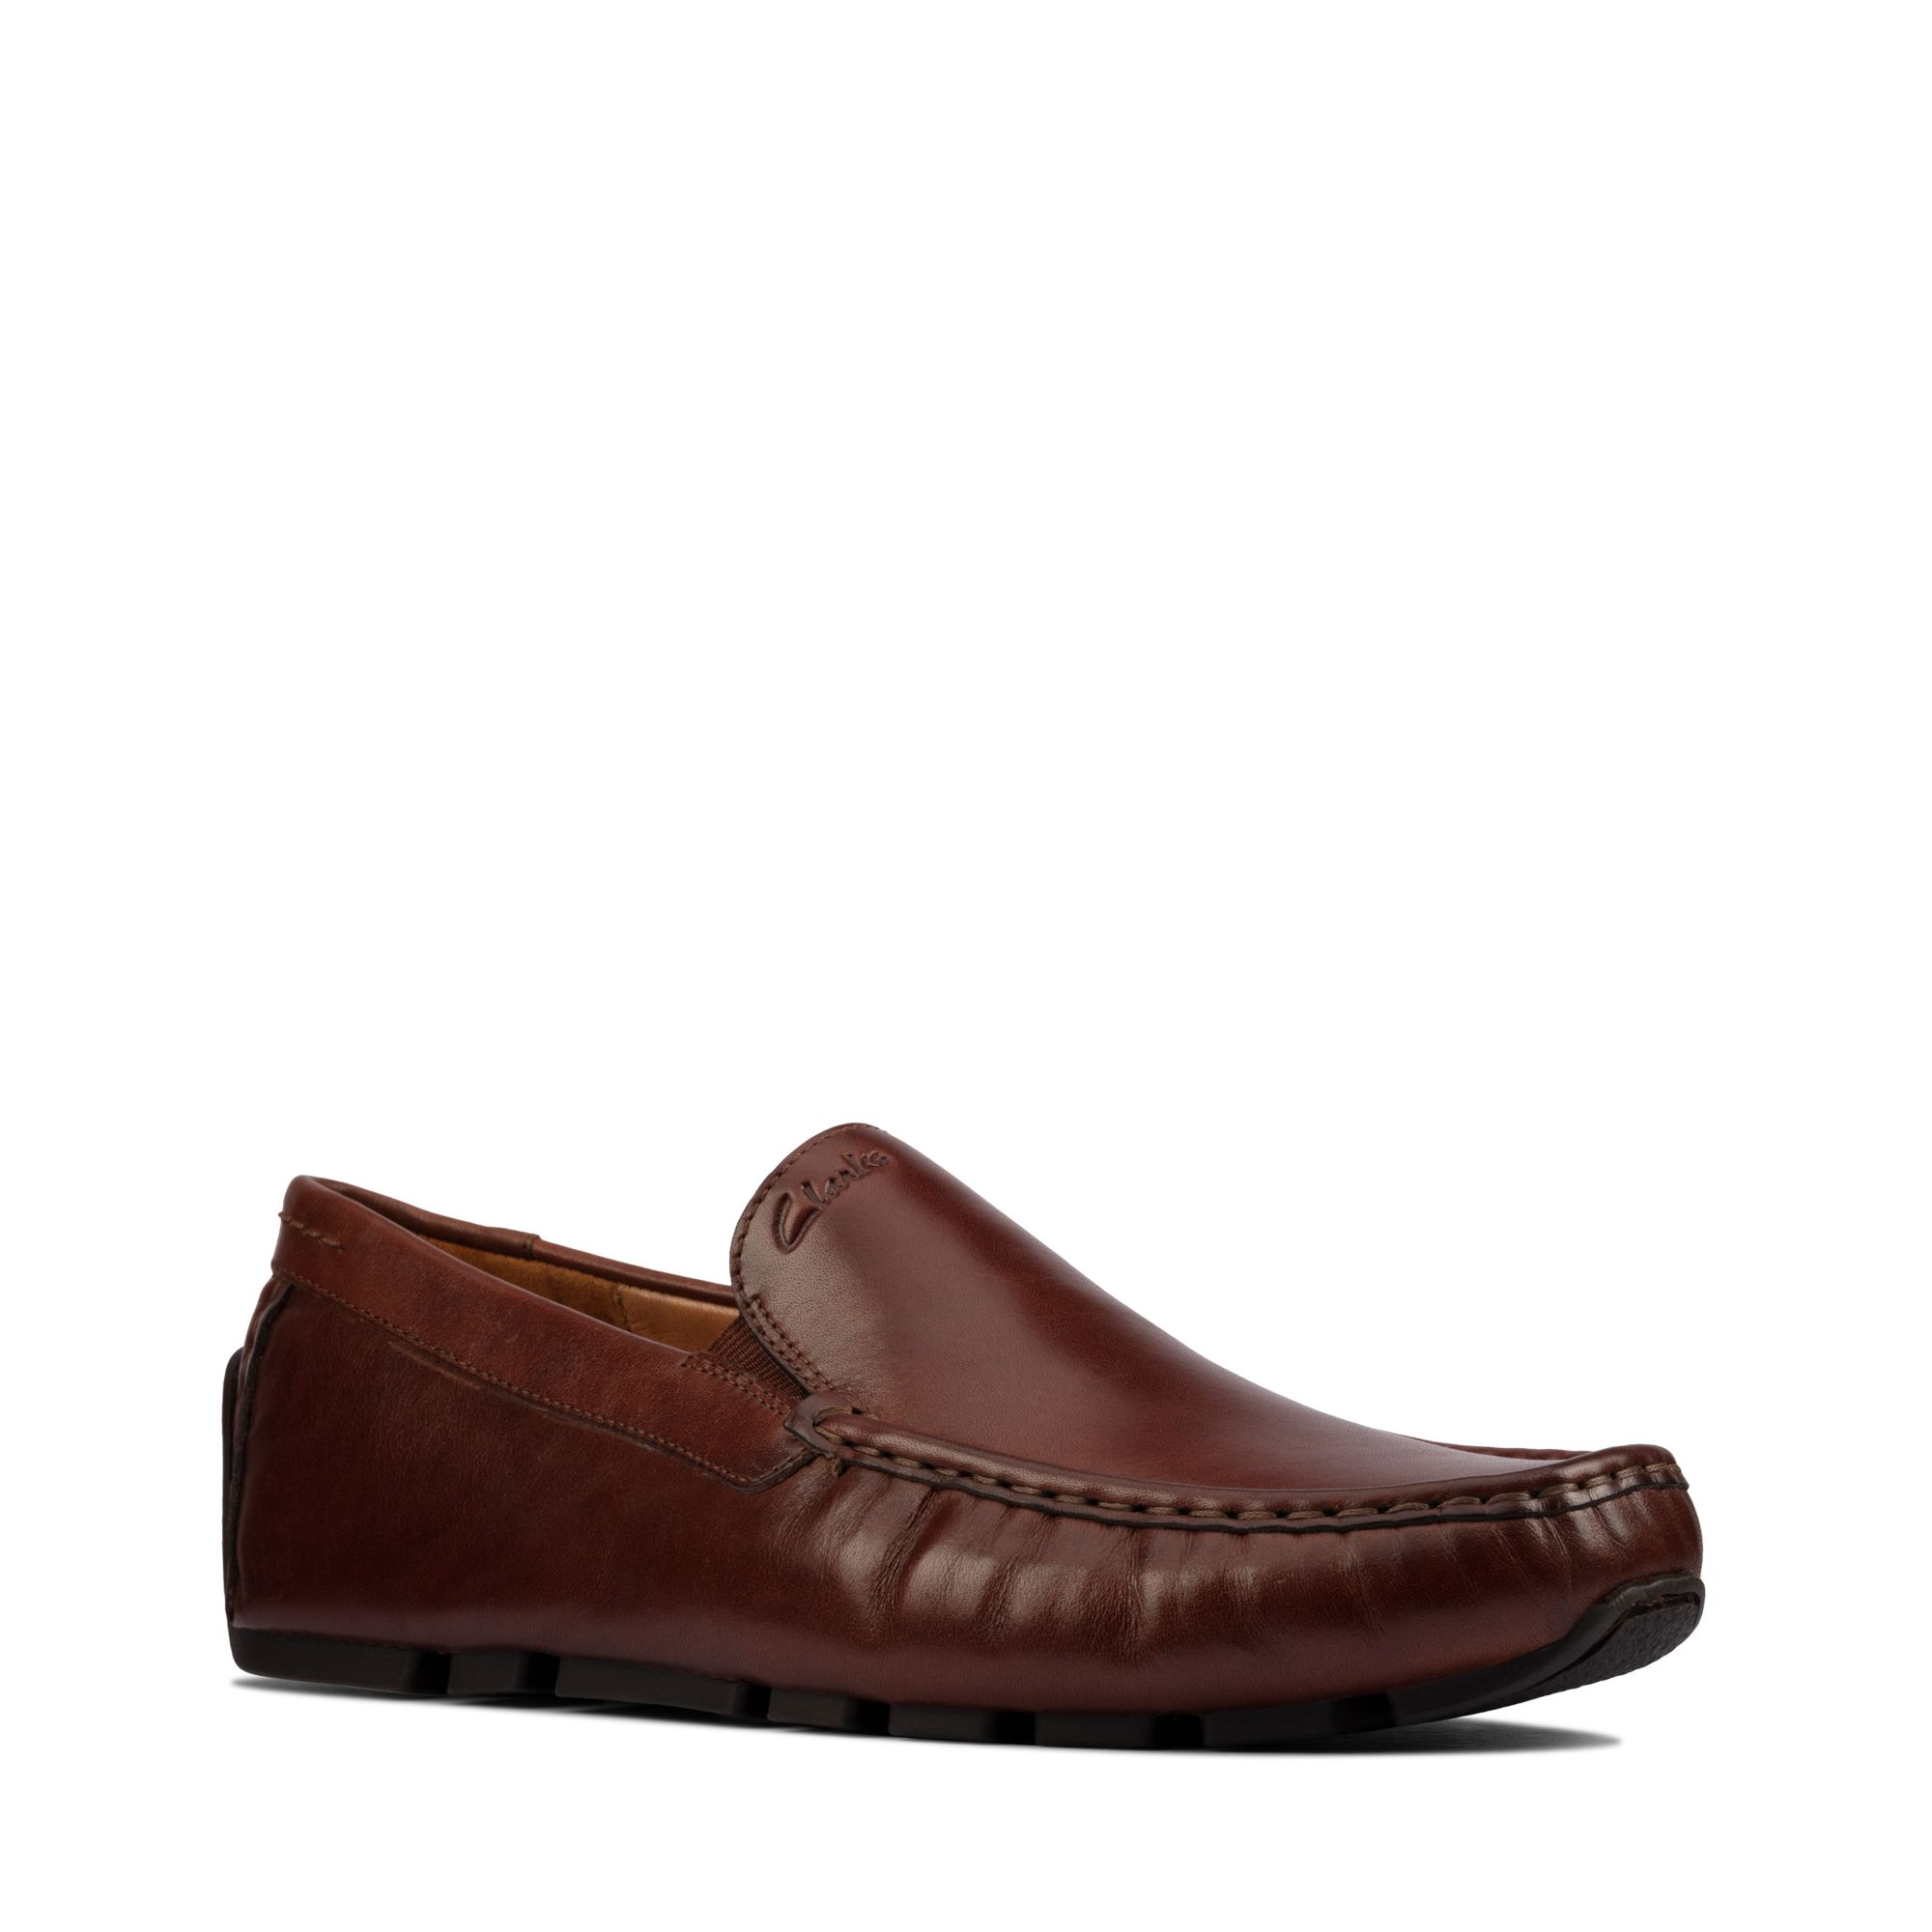 Clarks Oswick Edge Loafers, Tan Leather, 44.5